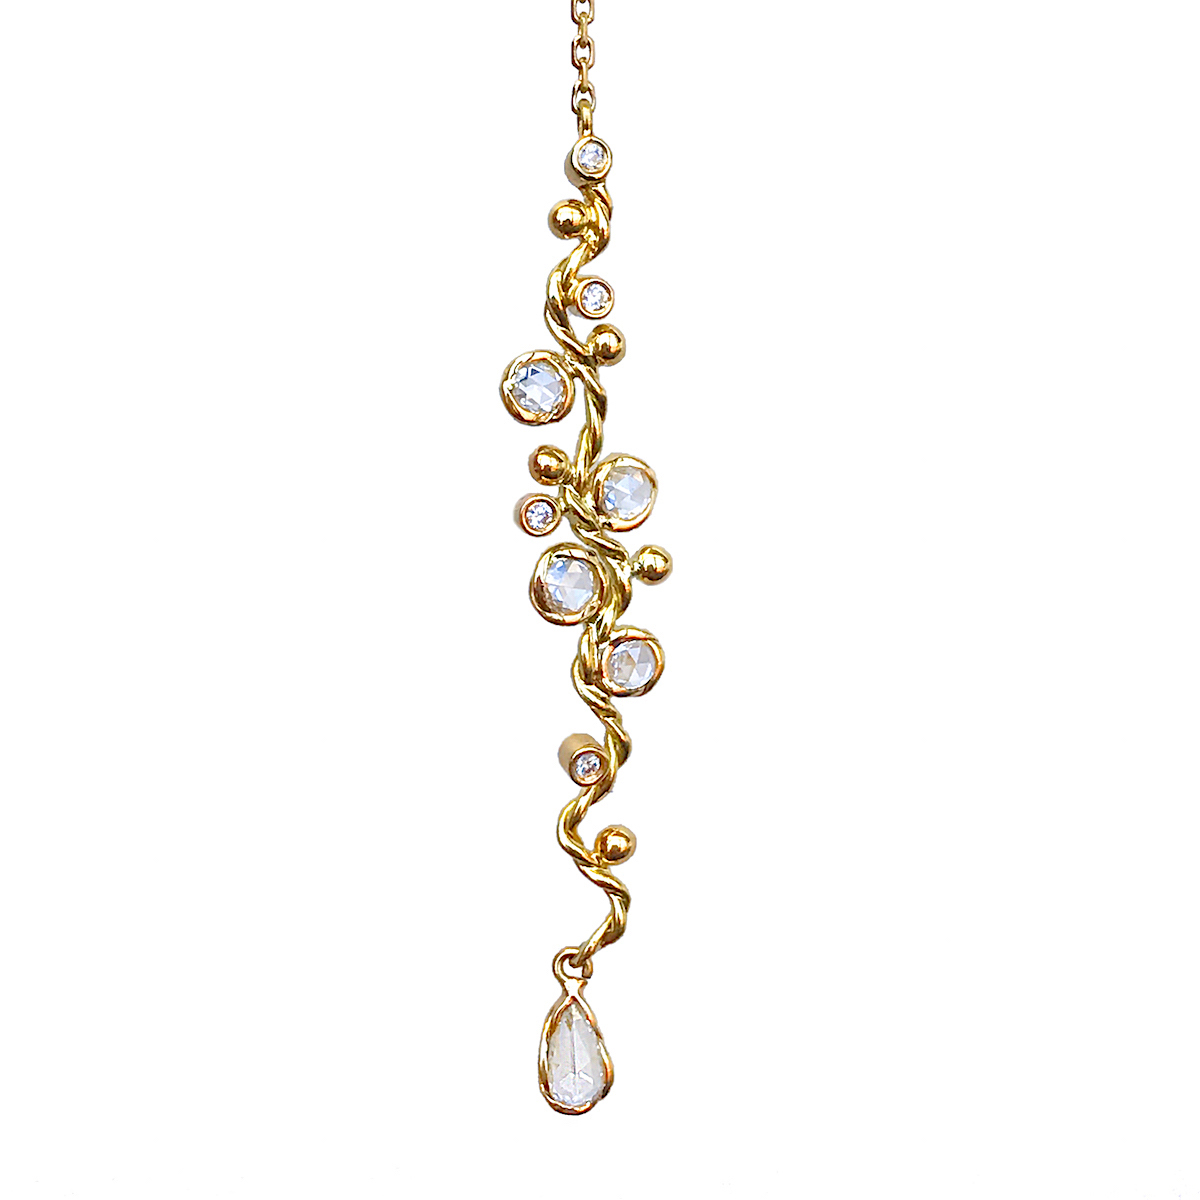 74-Signature-Free-Hand-Wavy-Twist-Scattered-Rose-Cut-Diamond-Lariat-Y-Necklace_5669